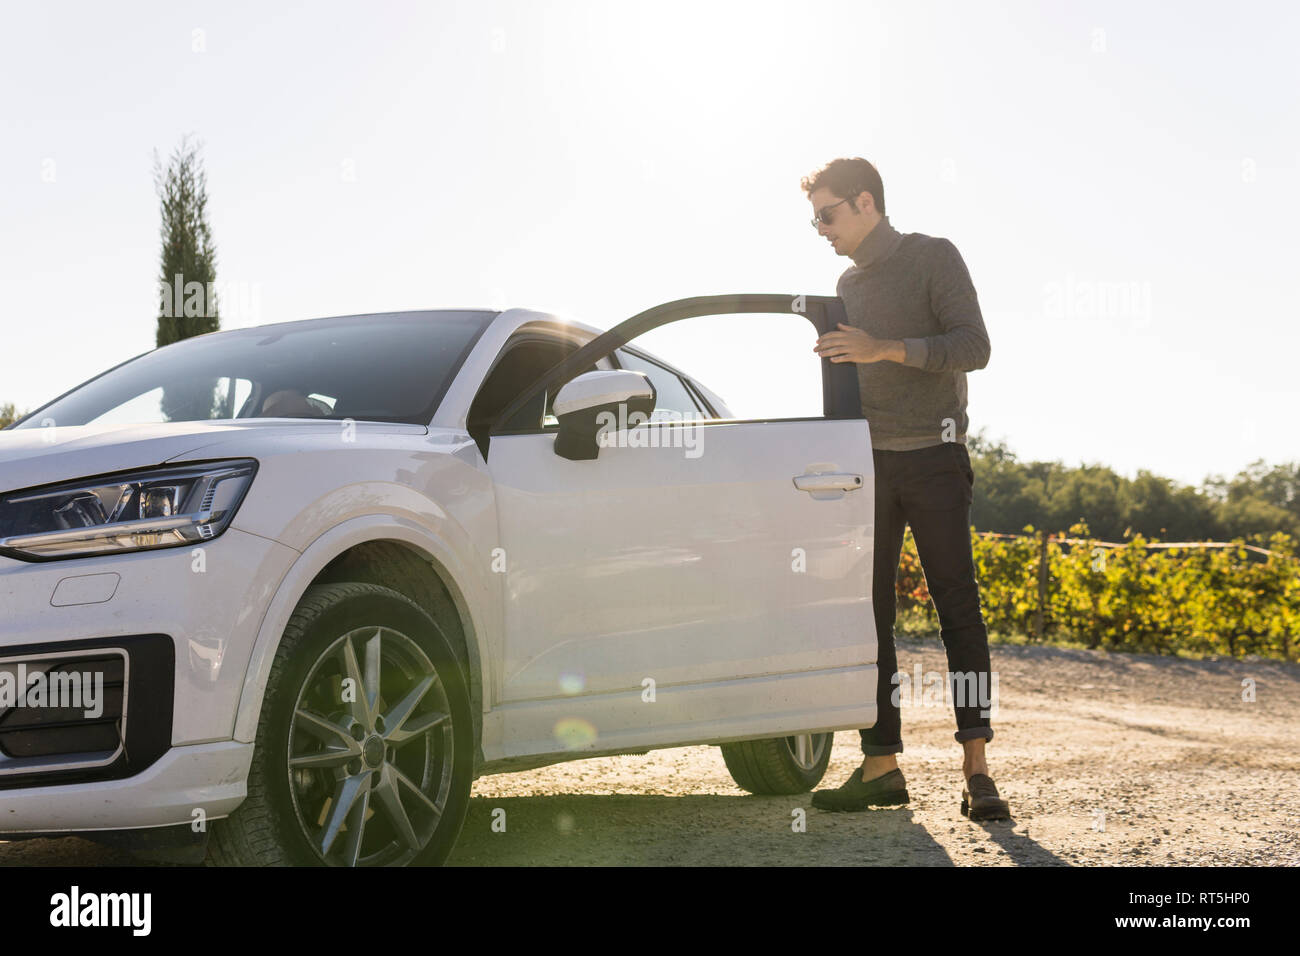 Italy, Tuscany, Siena, young man getting out of car in a vineyard - Stock Image